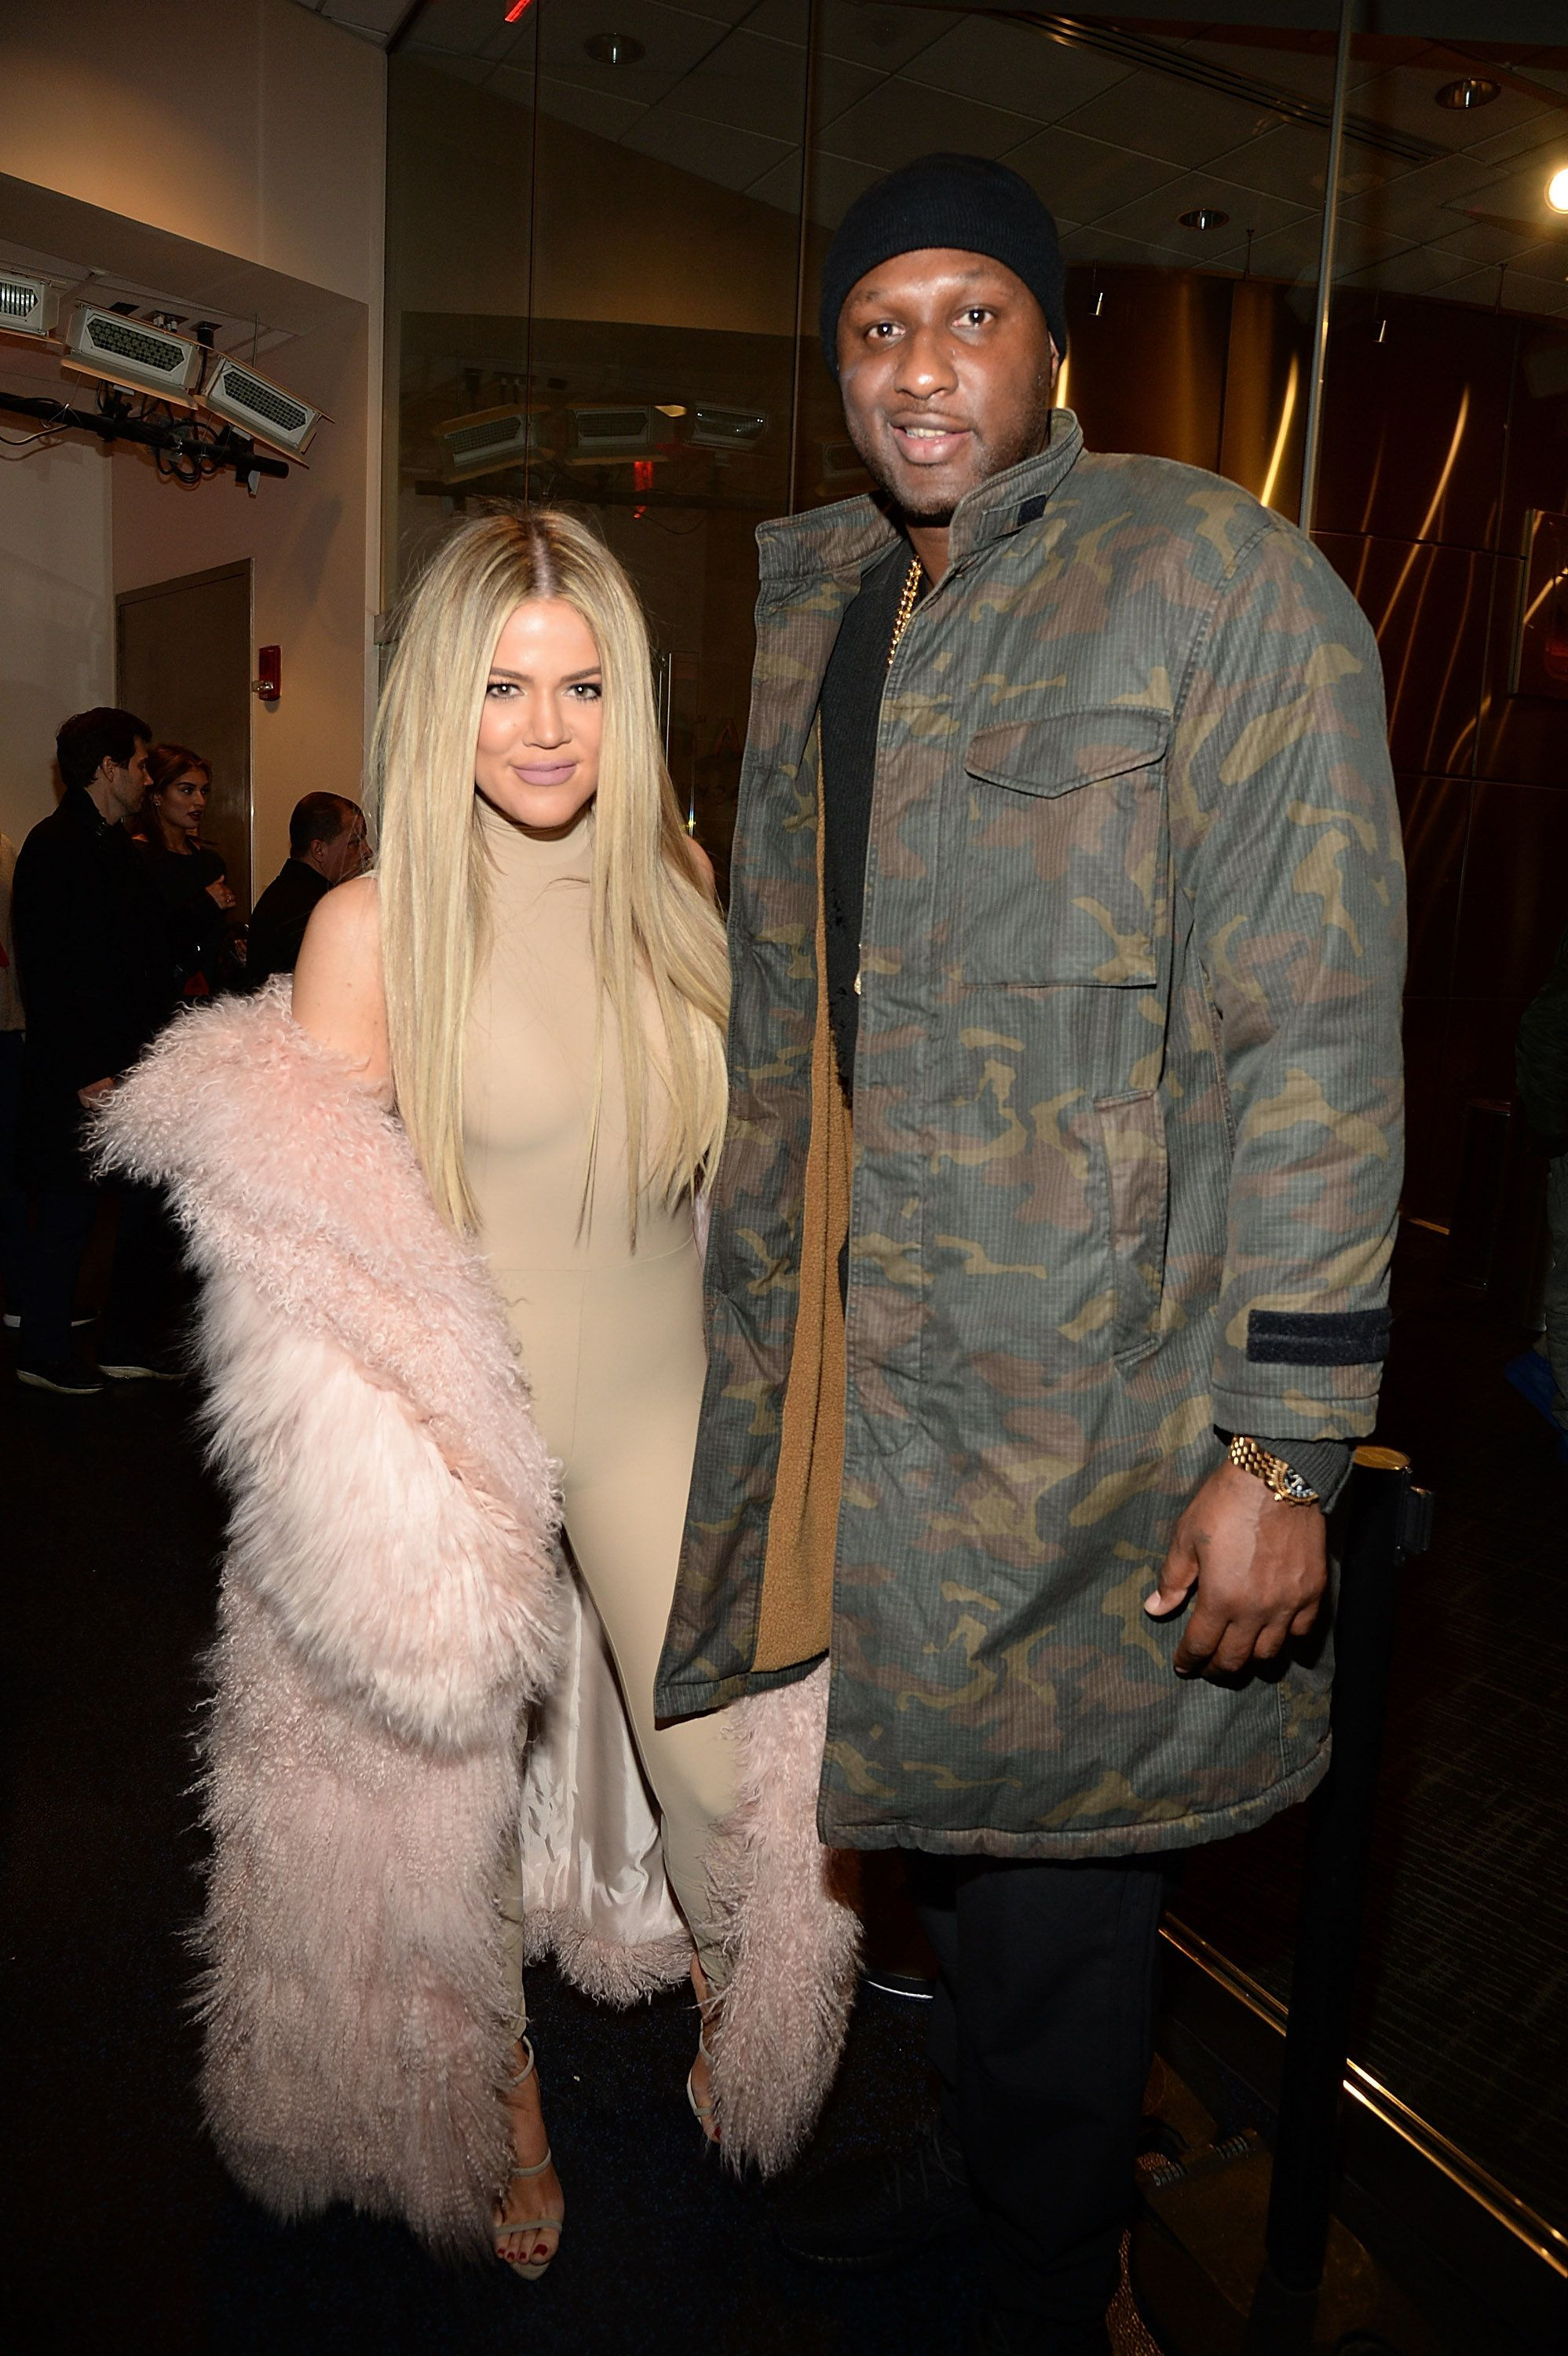 NEW YORK, NY - FEBRUARY 11:  Khloe Kardashian and Lamar Odom attend Kanye West Yeezy Season 3 at Madison Square Garden on February 11, 2016 in New York City.  (Photo by Kevin Mazur/Getty Images for Yeezy Season 3)